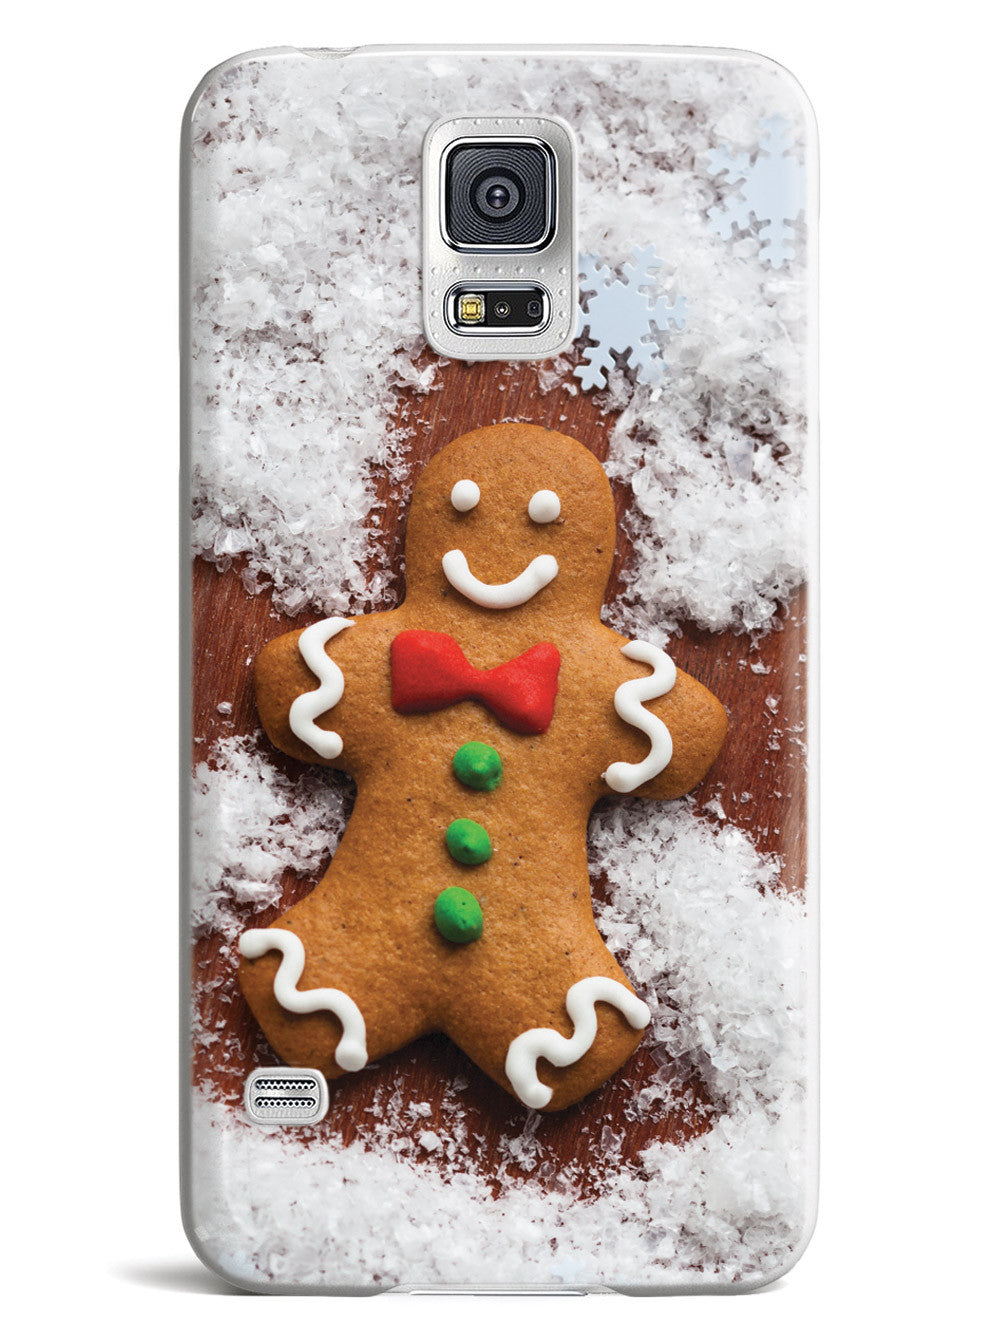 Gingerbread Snow Angel Case